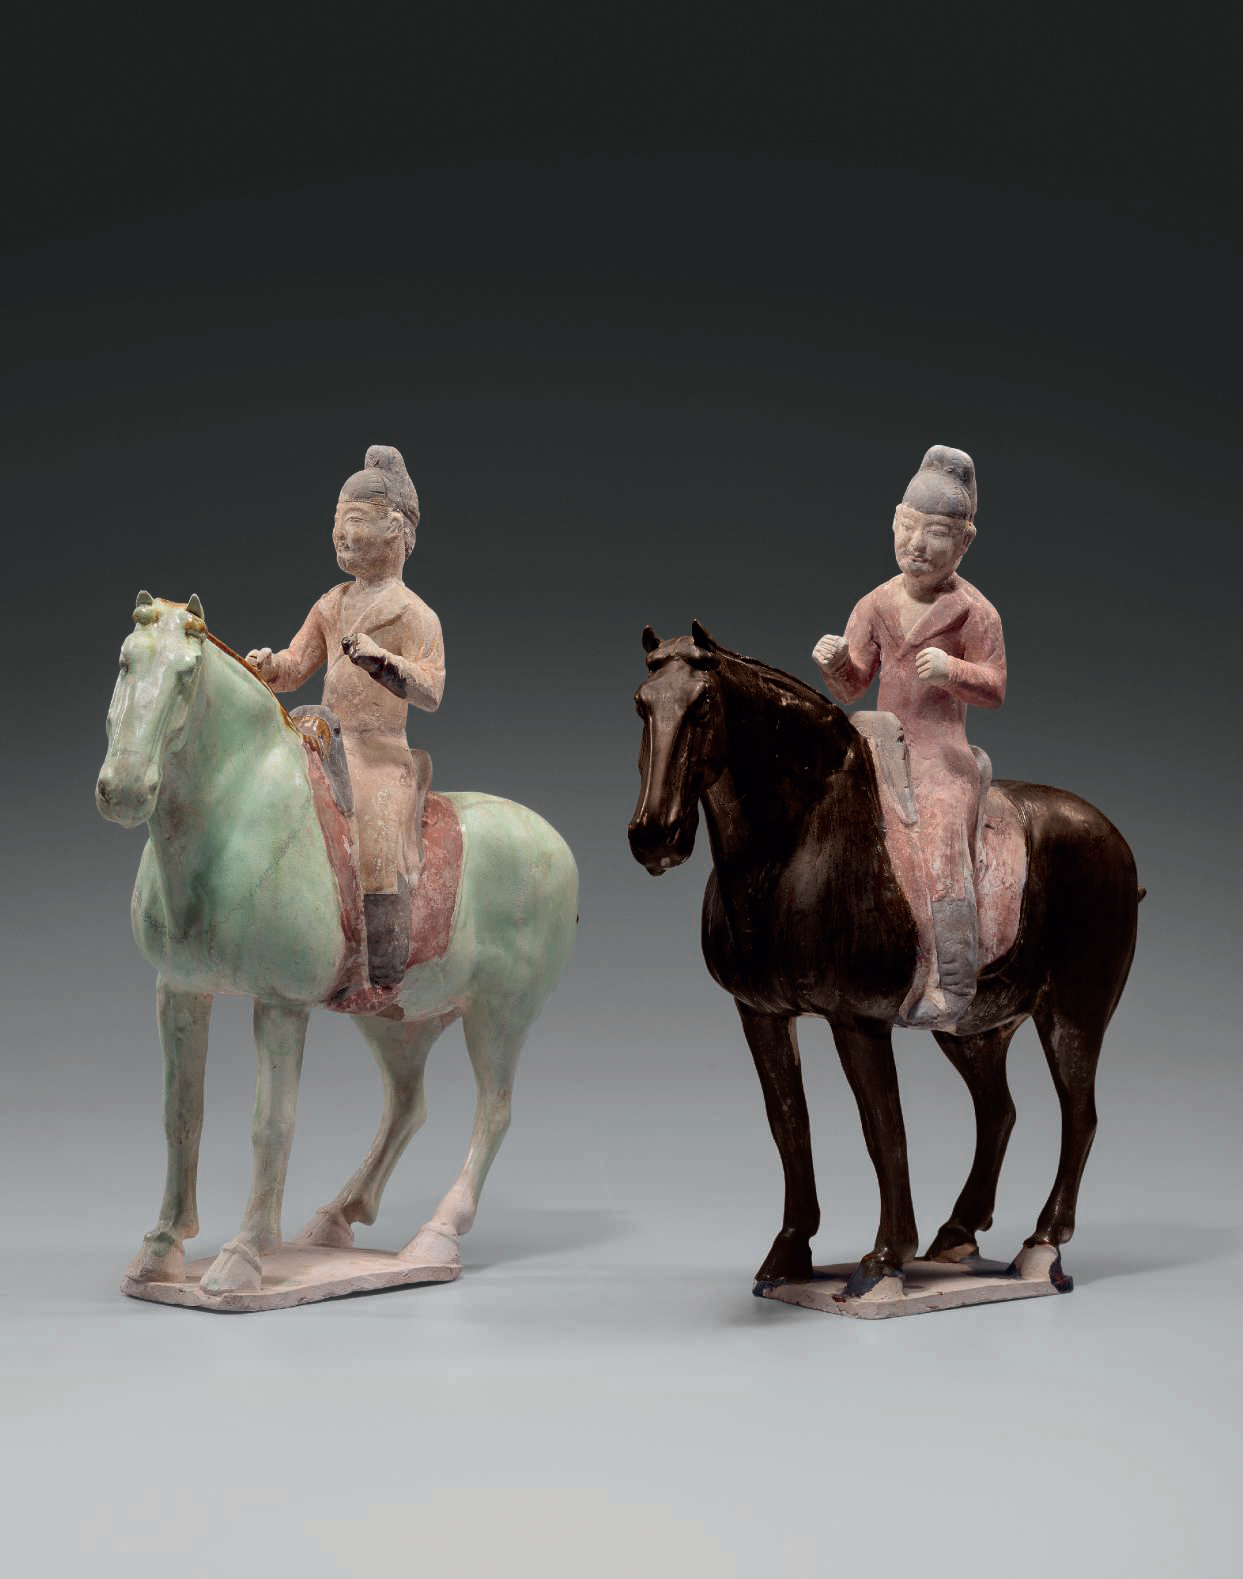 Two rare glazed and painted pottery figures of equestrians, Tang dynasty (AD 618-907)